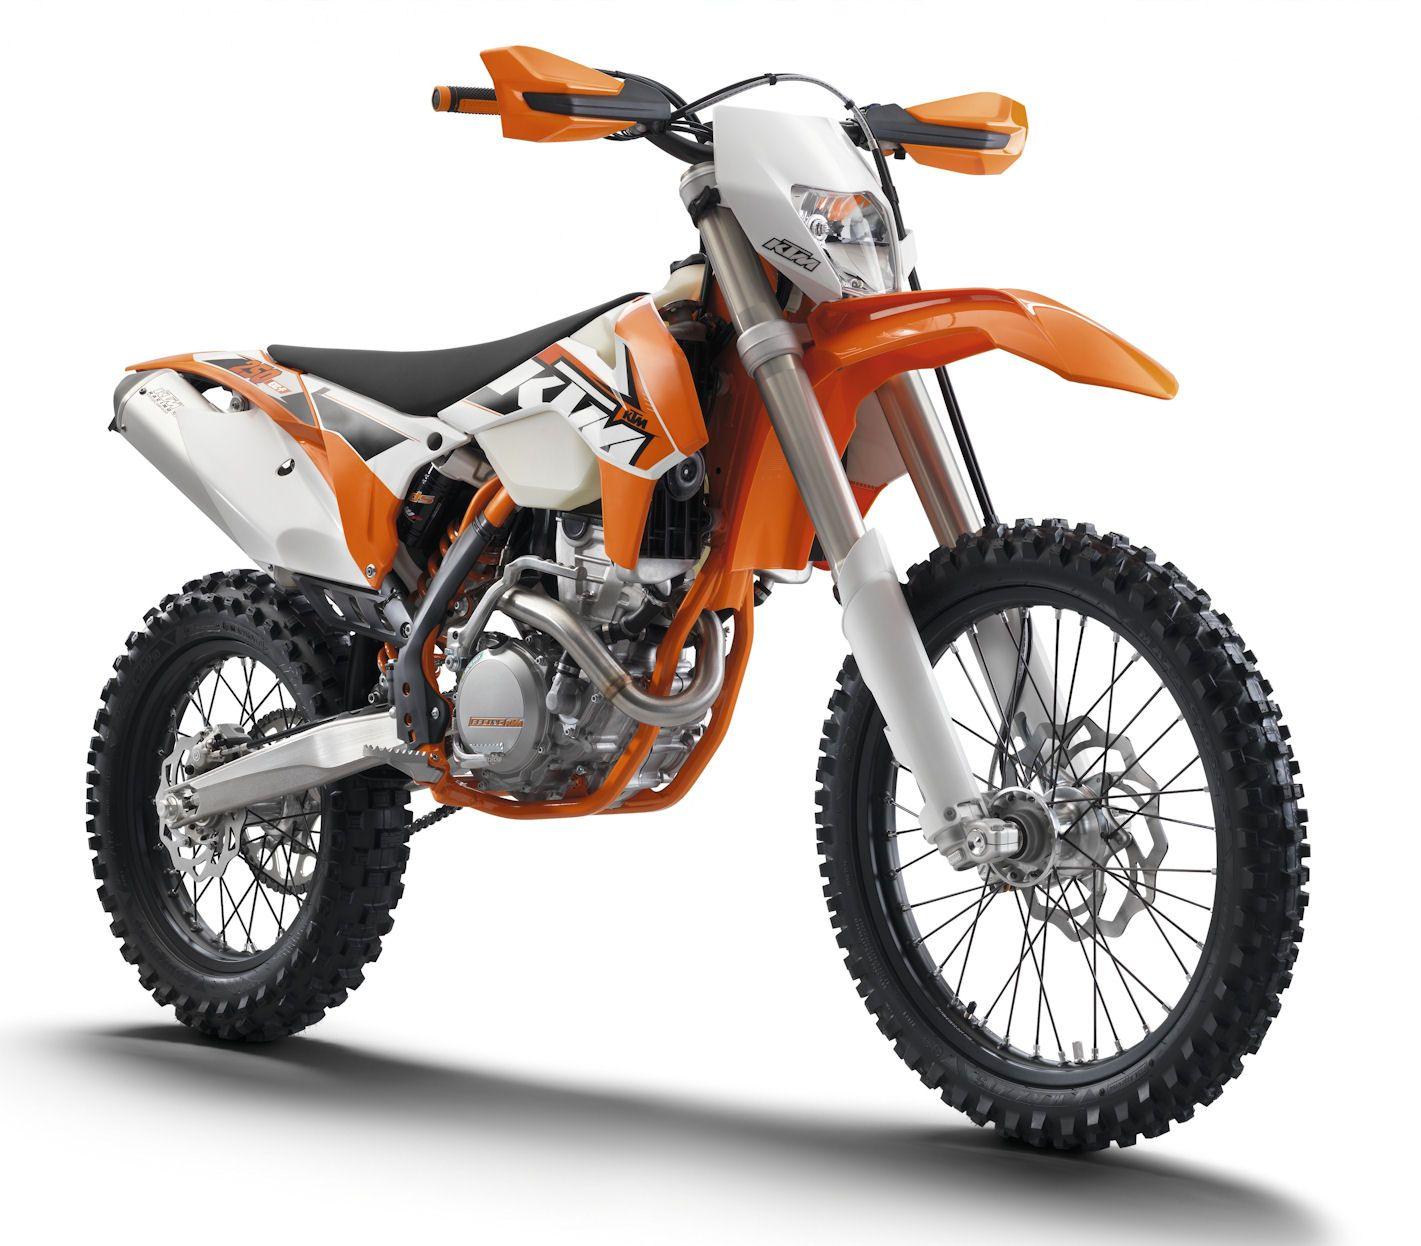 Ktm 350 Exc F The Best Off Road Bike I Have Ever Owned Ktm